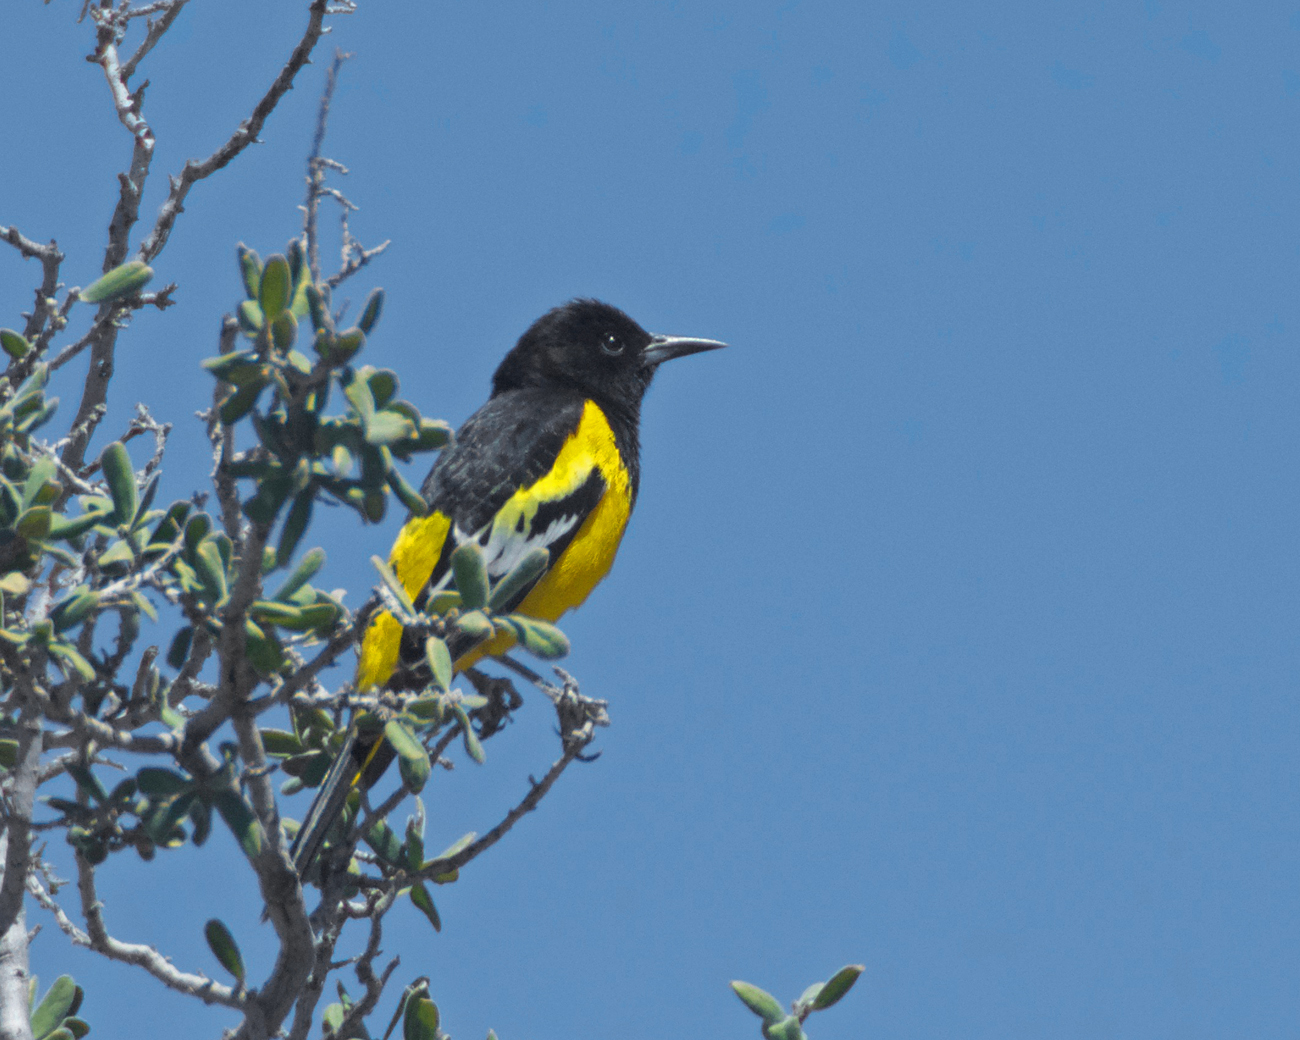 Scott's oriole, a bright yellow and black bird, perched on a desert shrub in Big Bend National Park